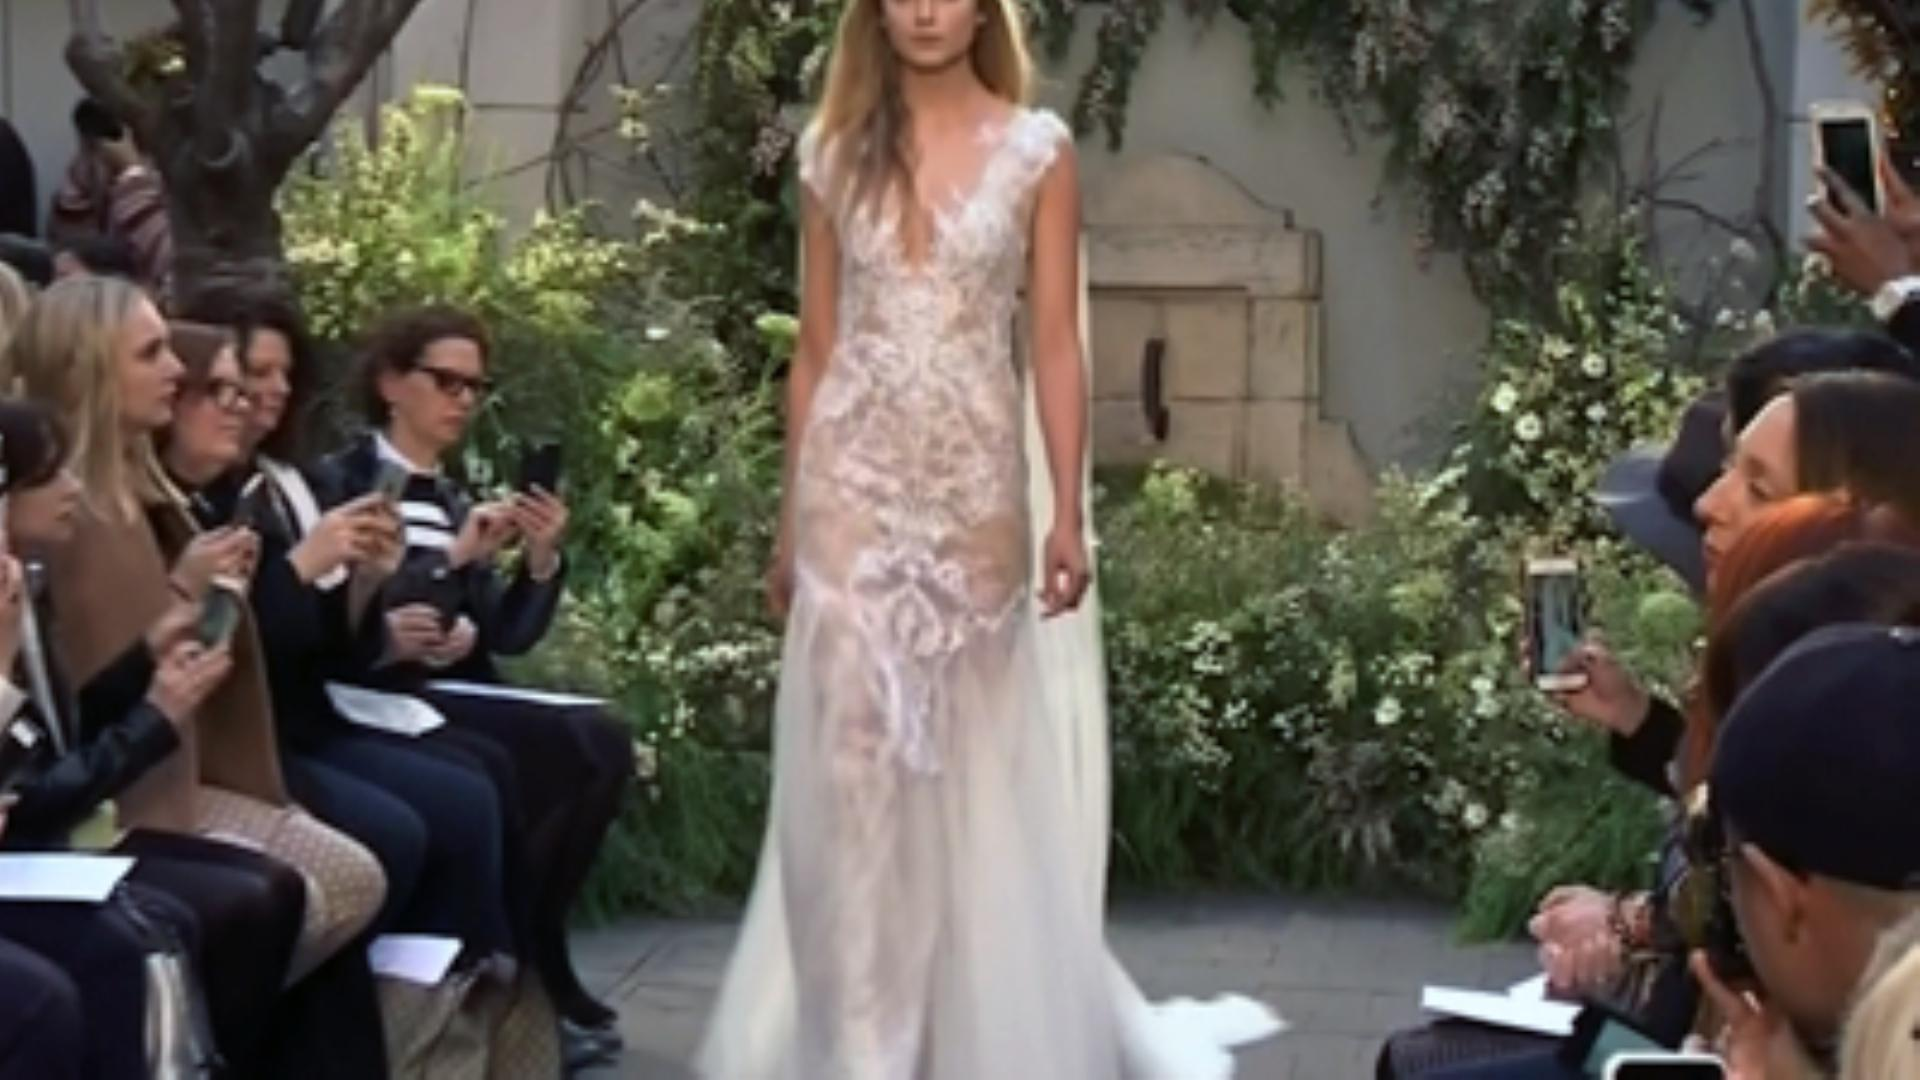 Highlights of Monique Lhuillier's Bridal Fashion